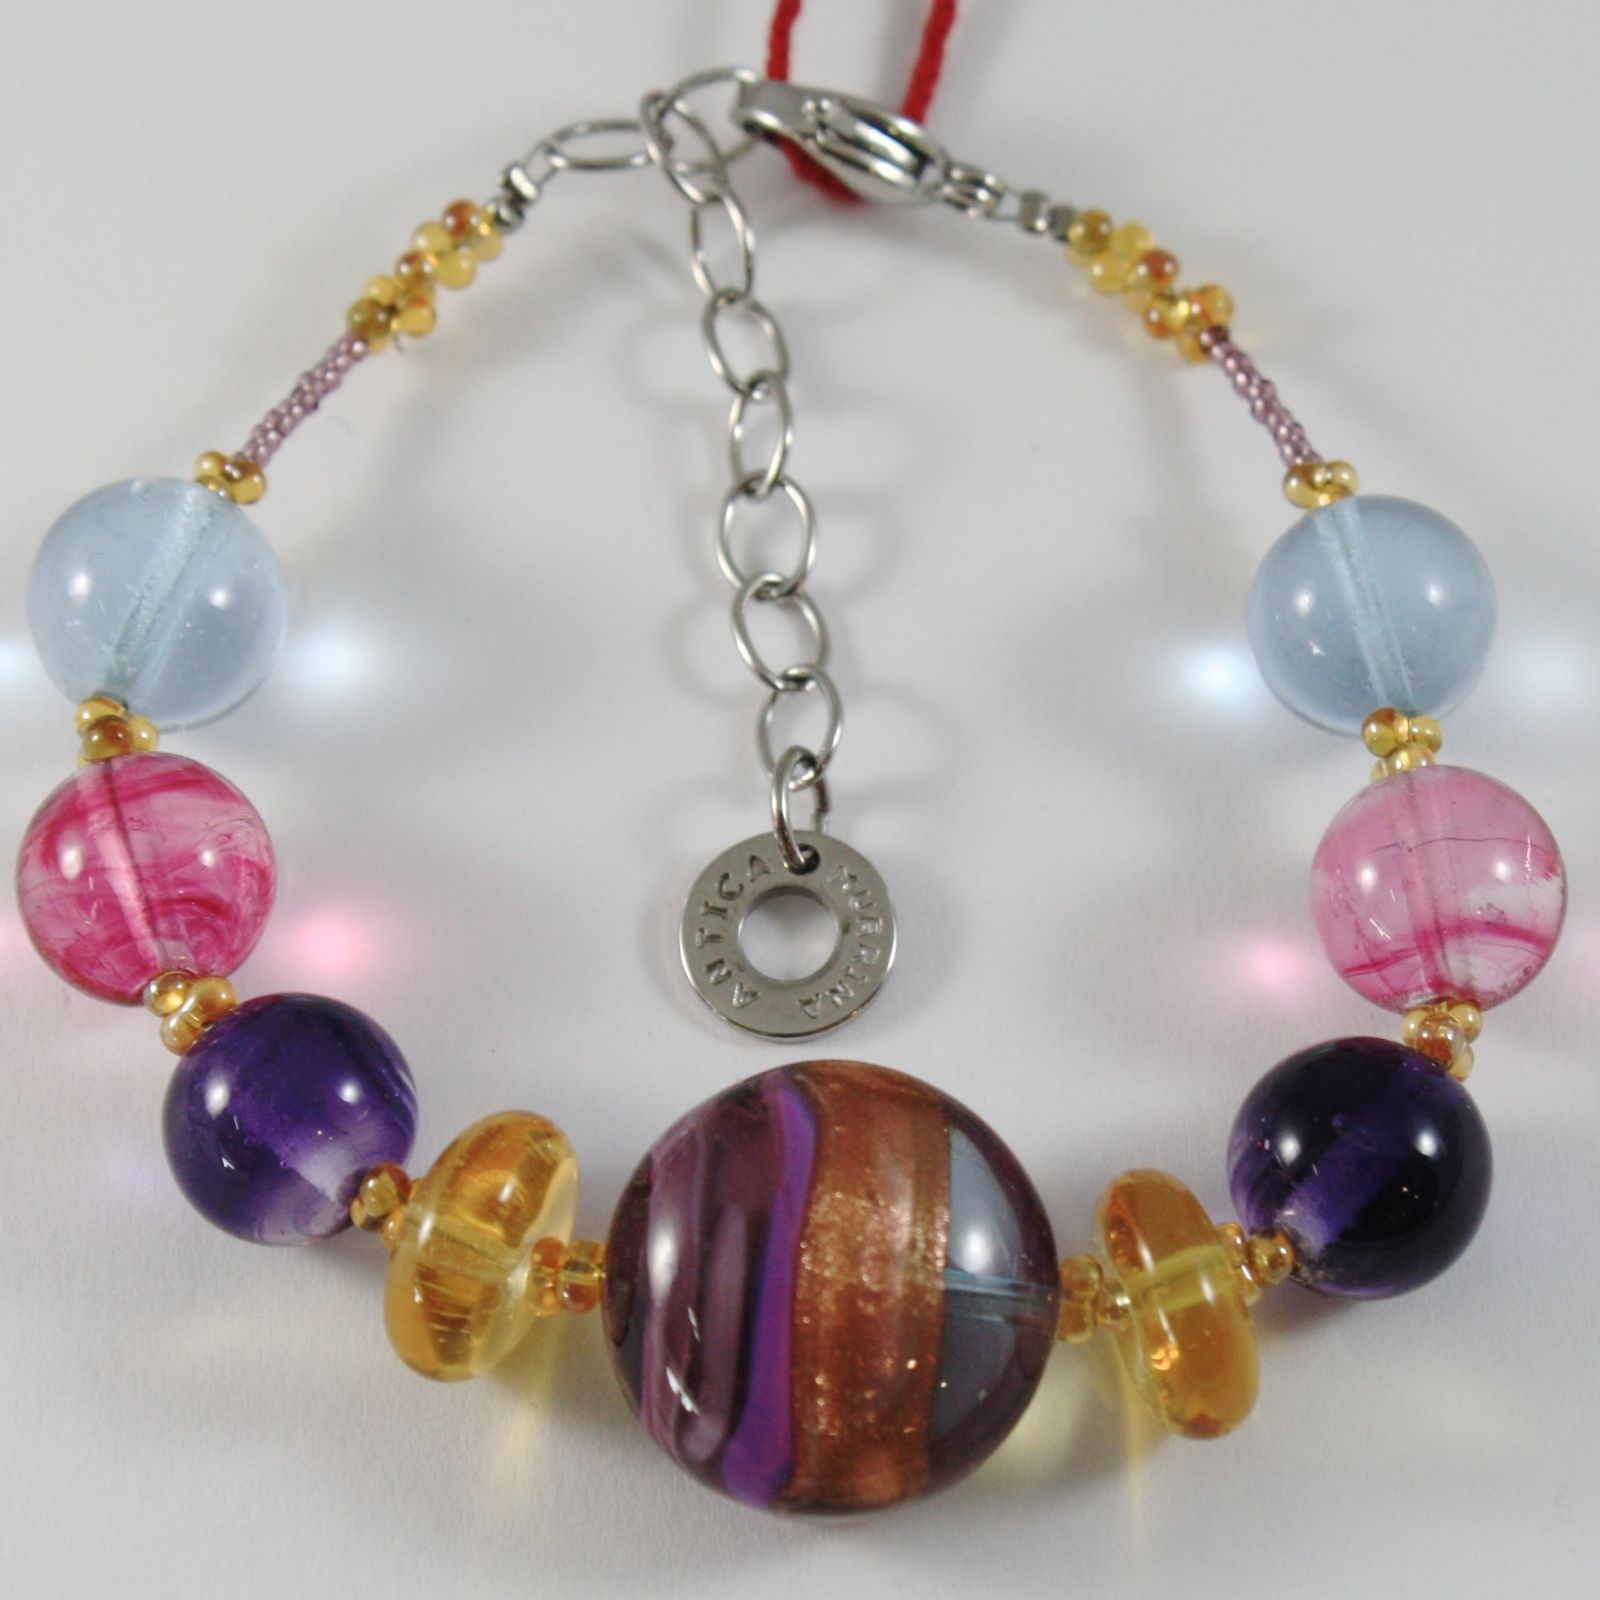 ANTICA MURRINA VENEZIA BRACELET BIG PURPLE FINELY STRIPED DISC, PINK